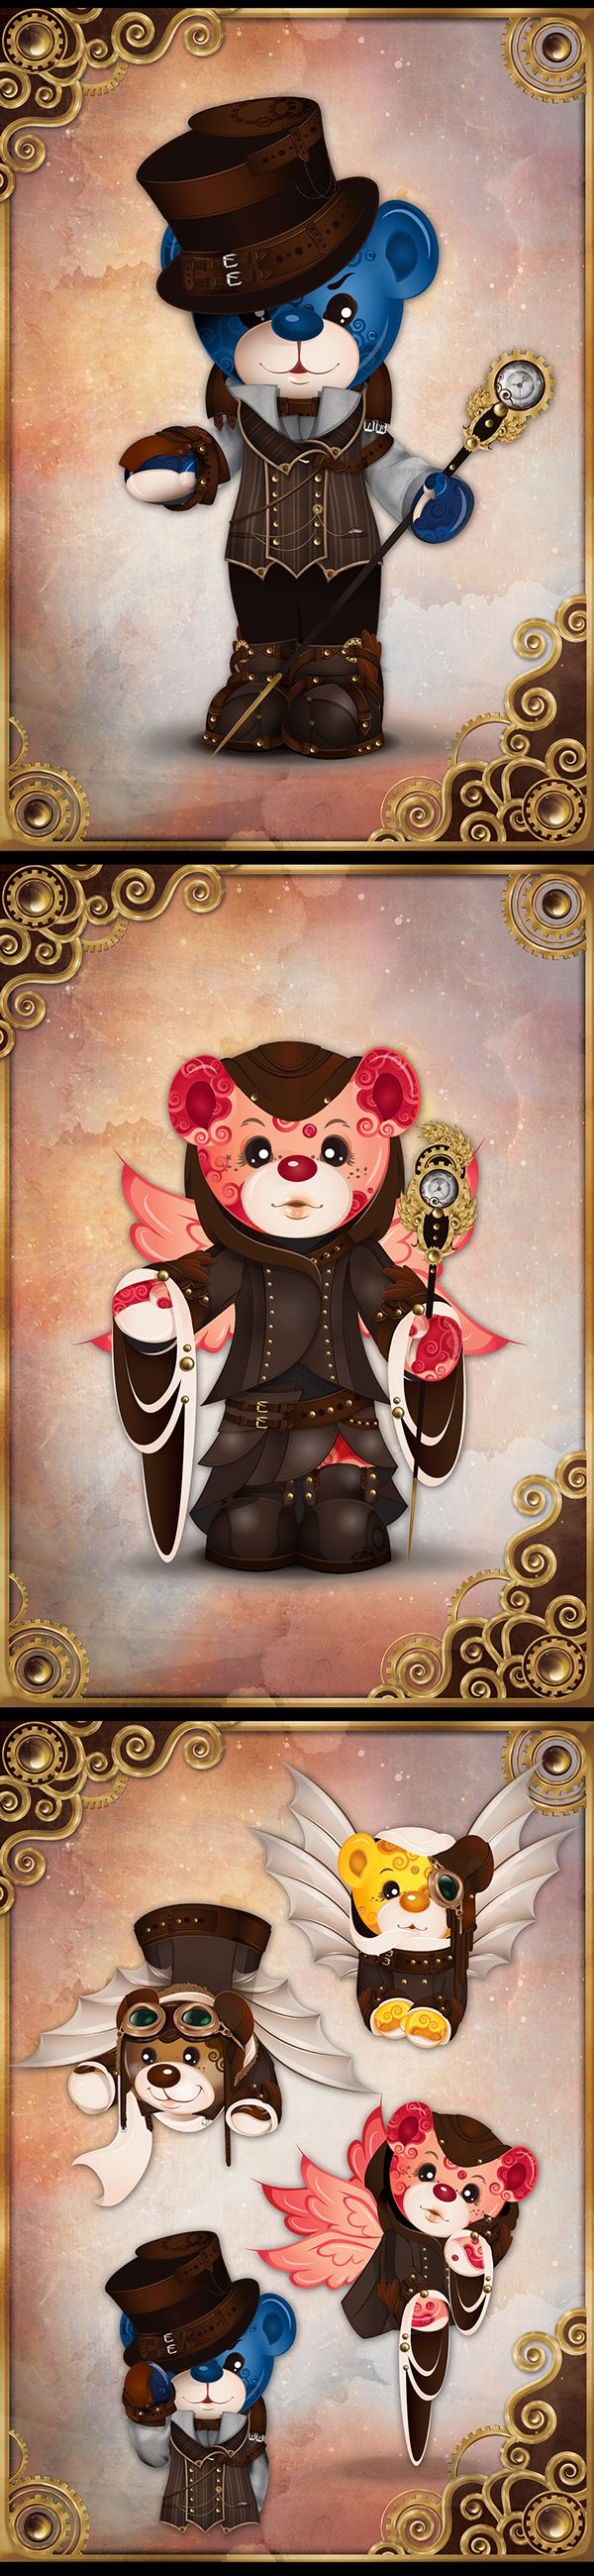 Steampunk bears: character arts